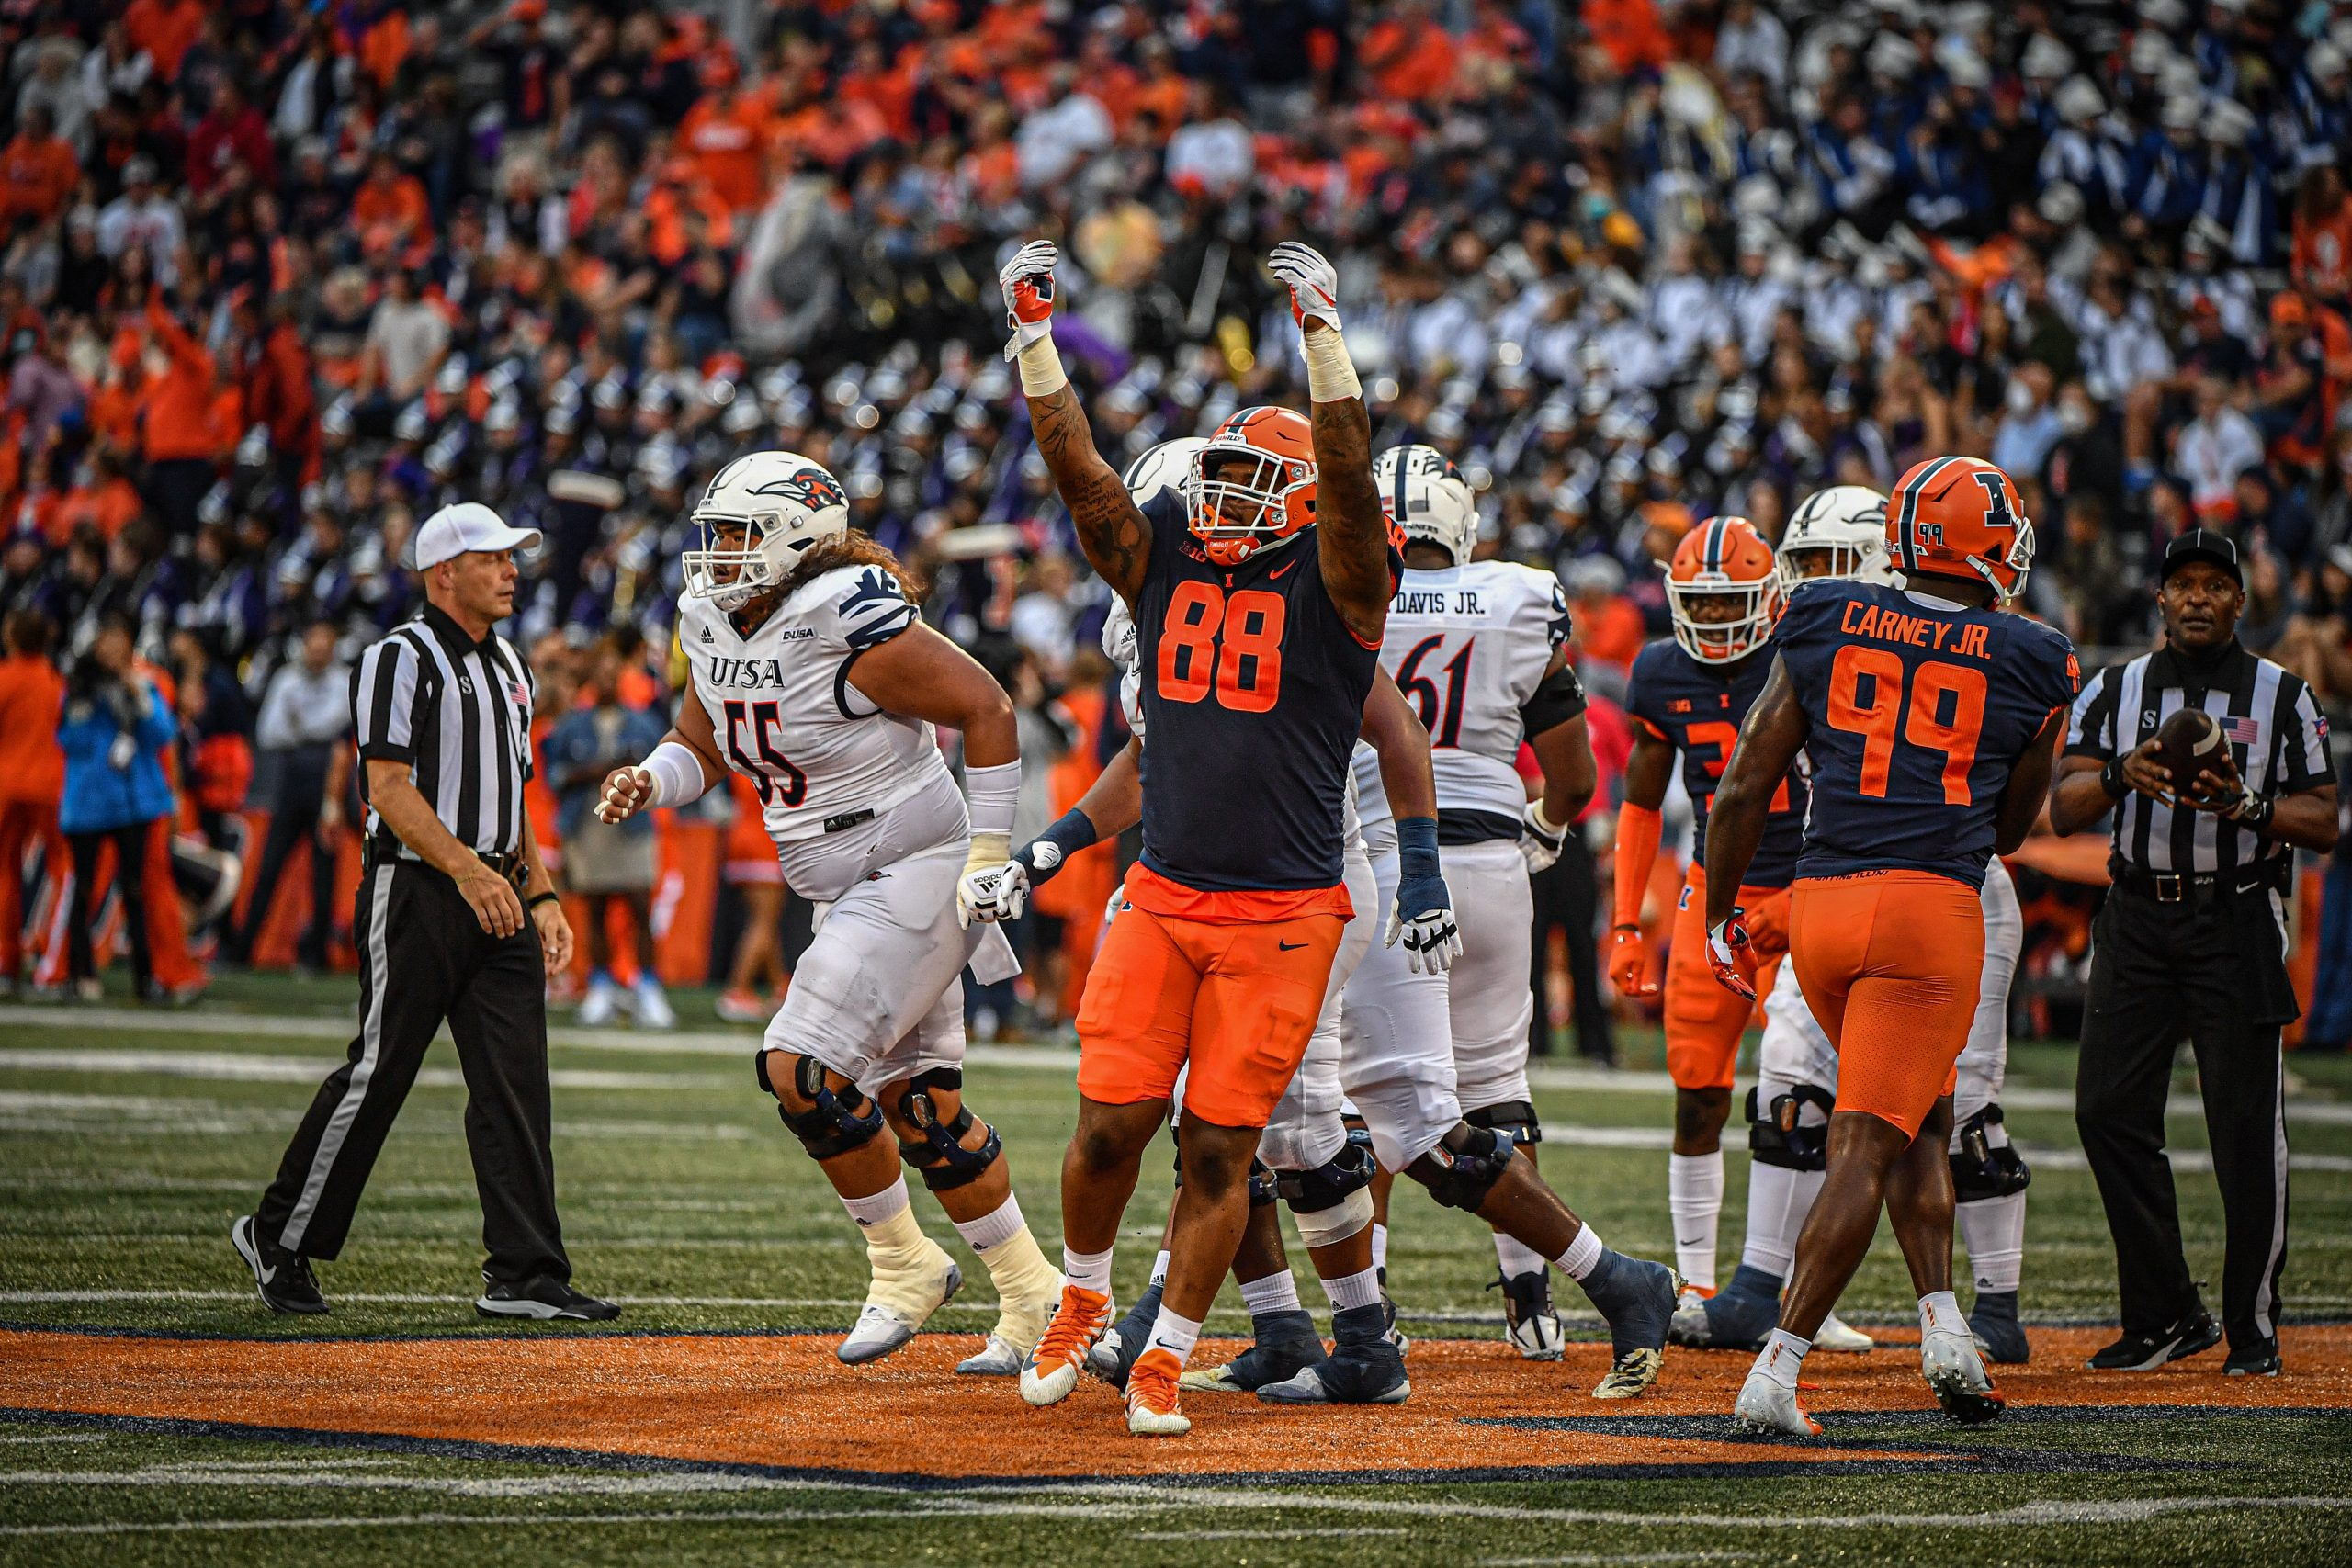 Illini Injury Update: Bielema Confirms DL Keith Randolph's Injury Shouldn't Result in Surgery